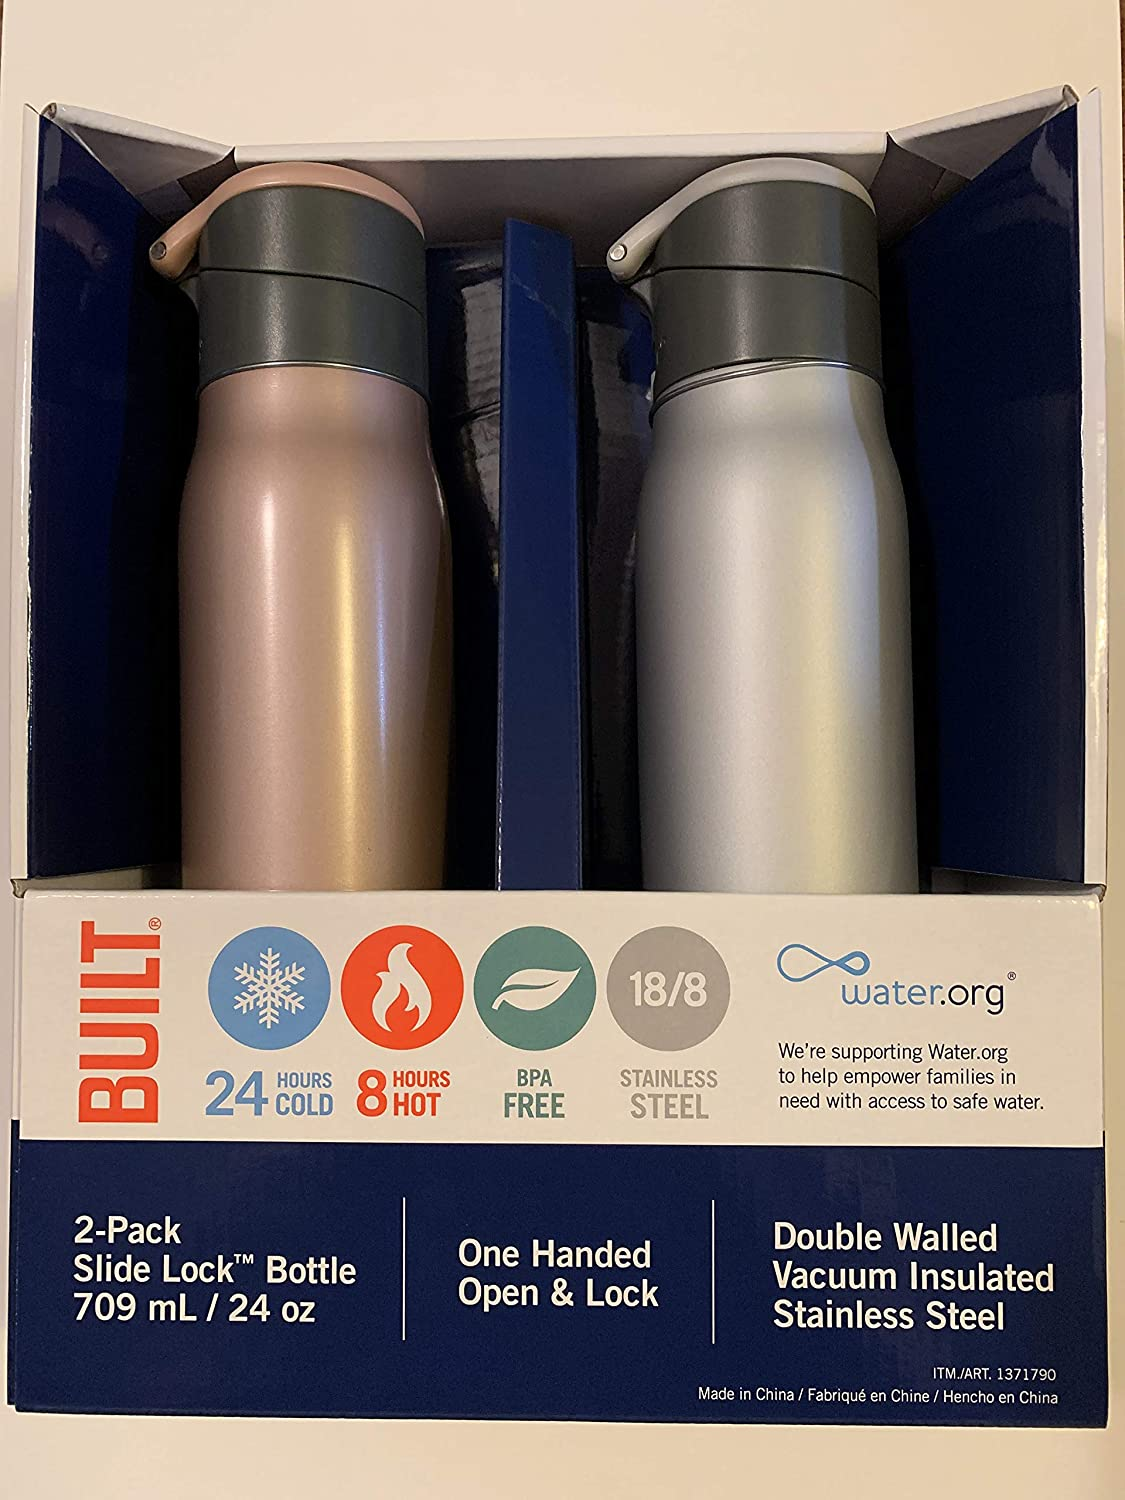 Built NY Double Walled Vacuum Insulated Stainless Steel Slide Lock Bottle, 24oz, 2-Pack, Rose Gold and Silver